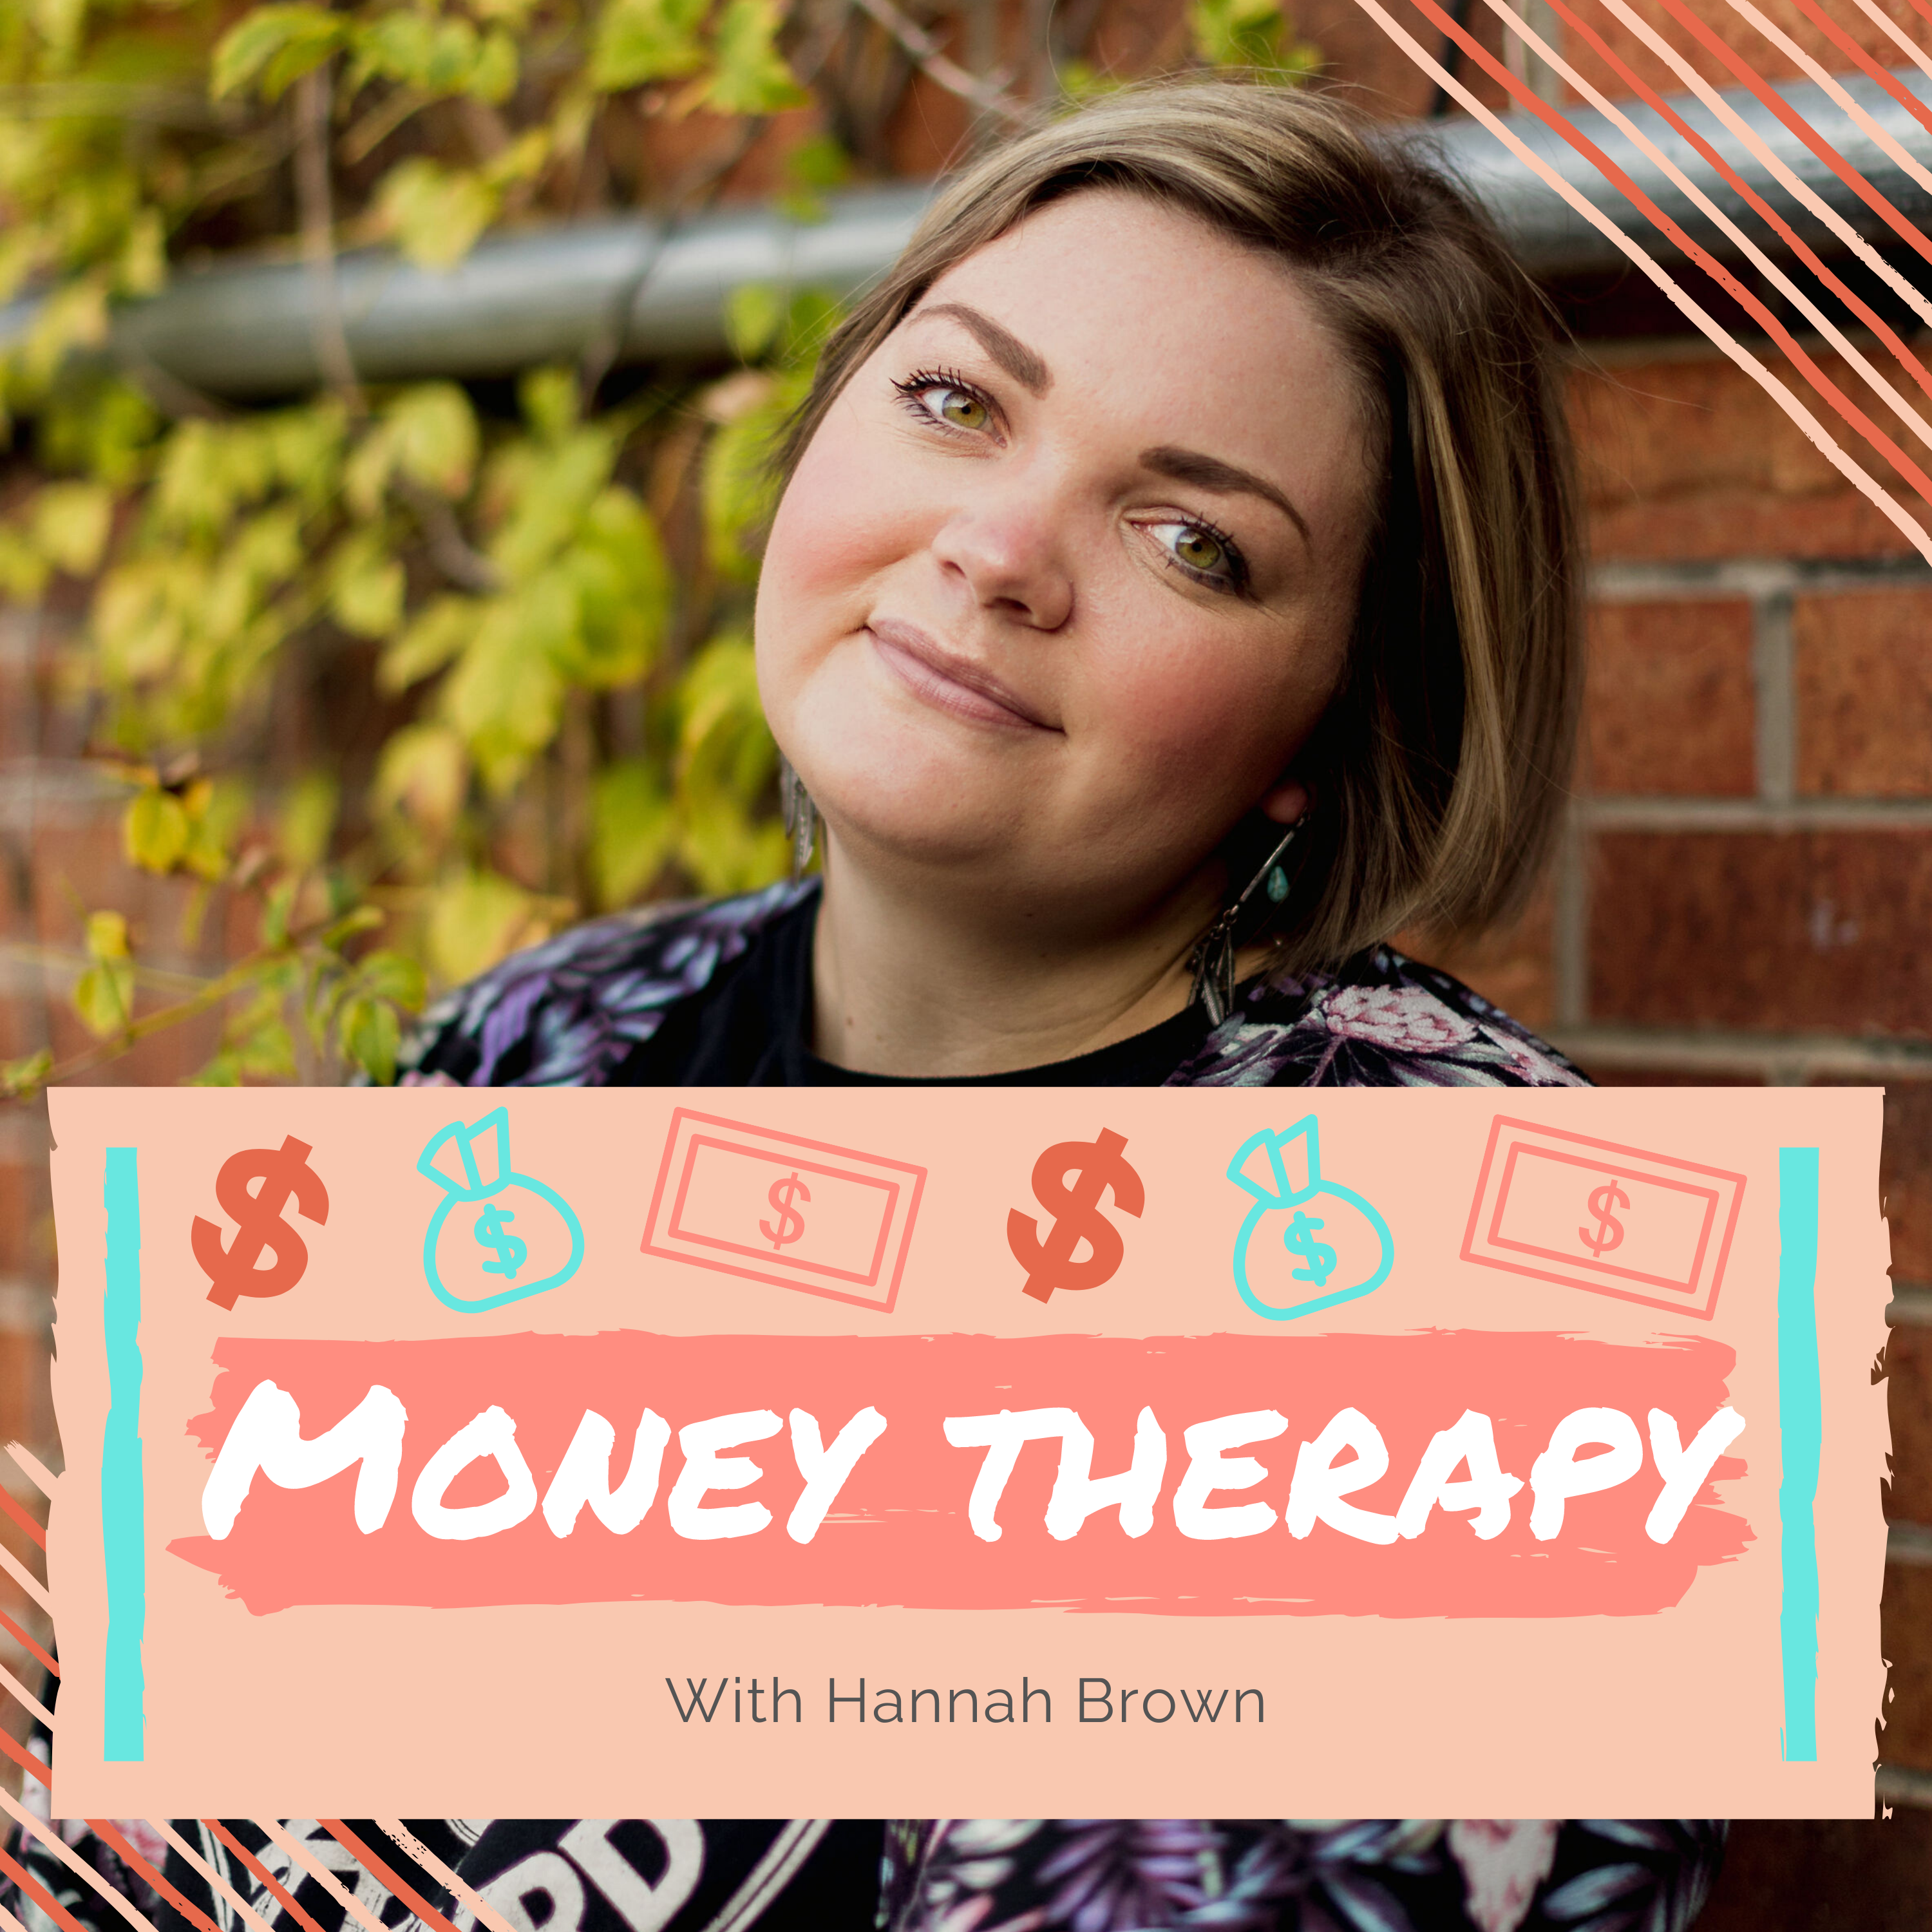 Money Therapy show image